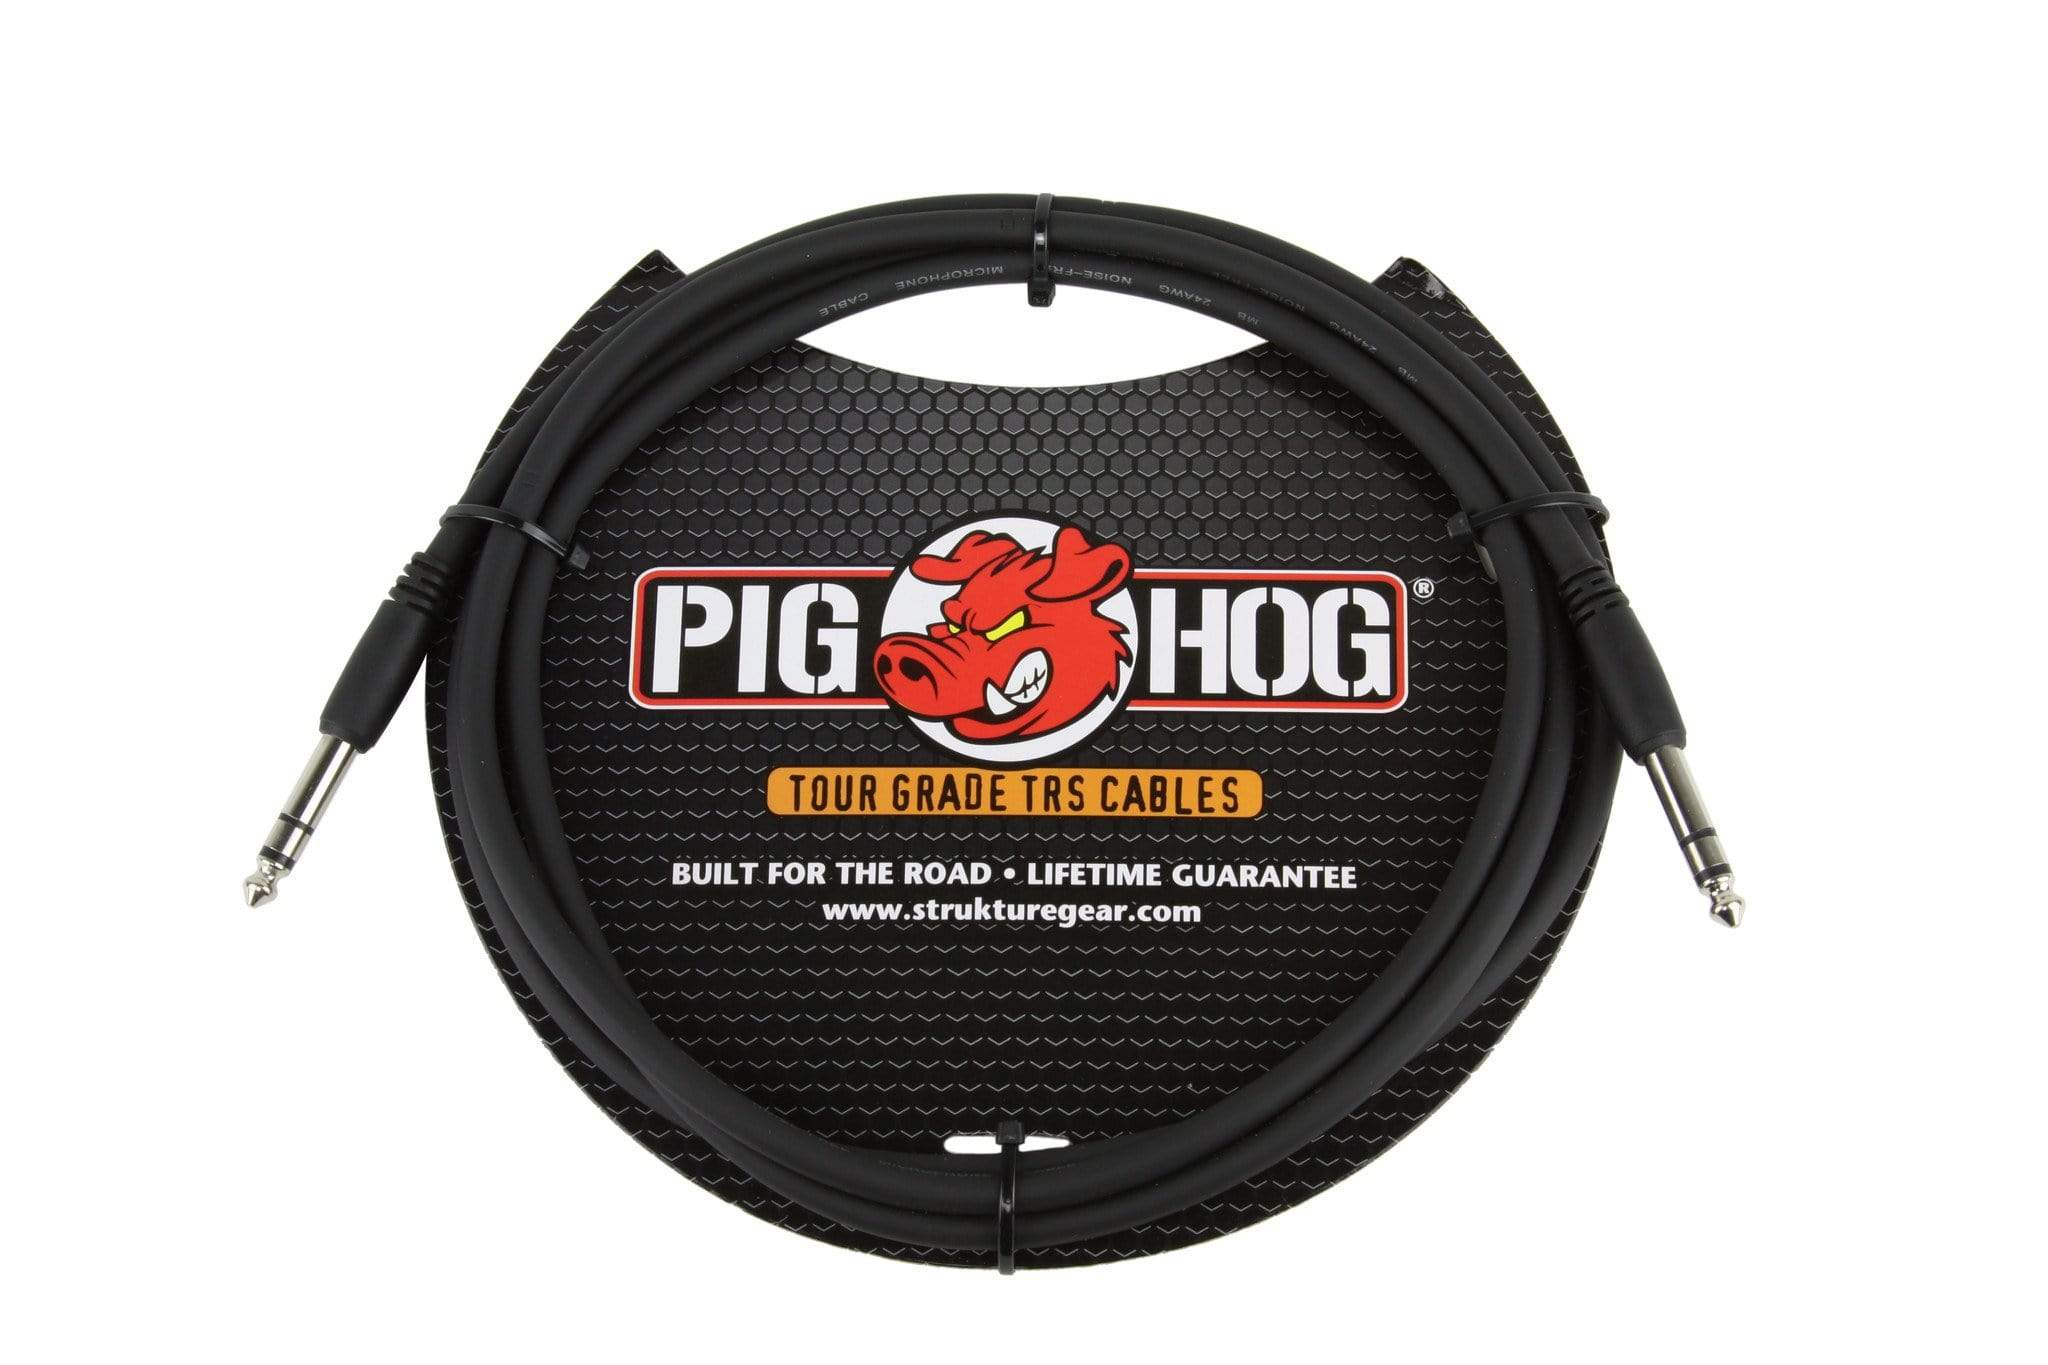 "PIG HOG INTERCONNECT CABLES Pig Hog 6 FT Foot 1/4"" TRS Balanced Stereo to 1/4"" TRS Cable Plug 8mm"